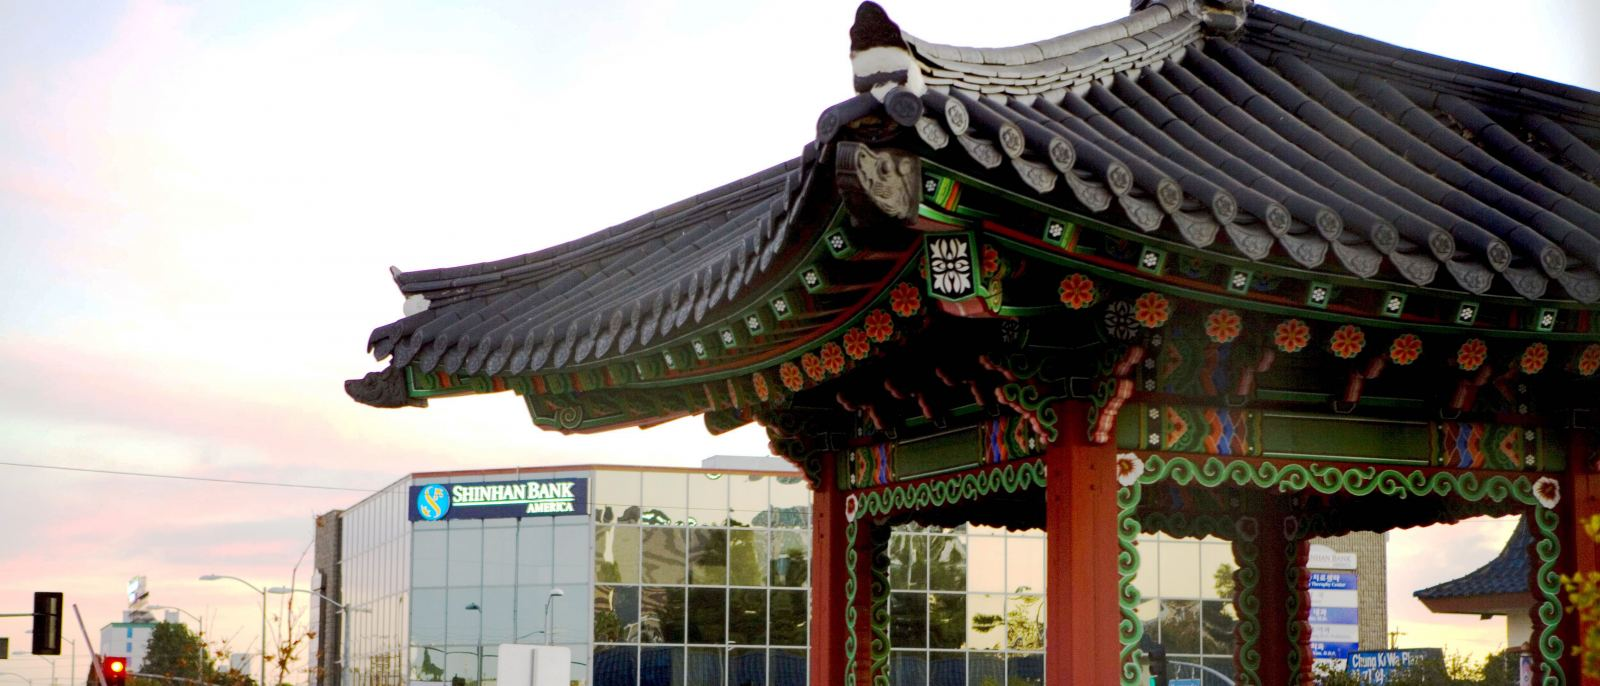 Koreatown Pavilion Garden | Photo: Advisory Council on Historic Preservation